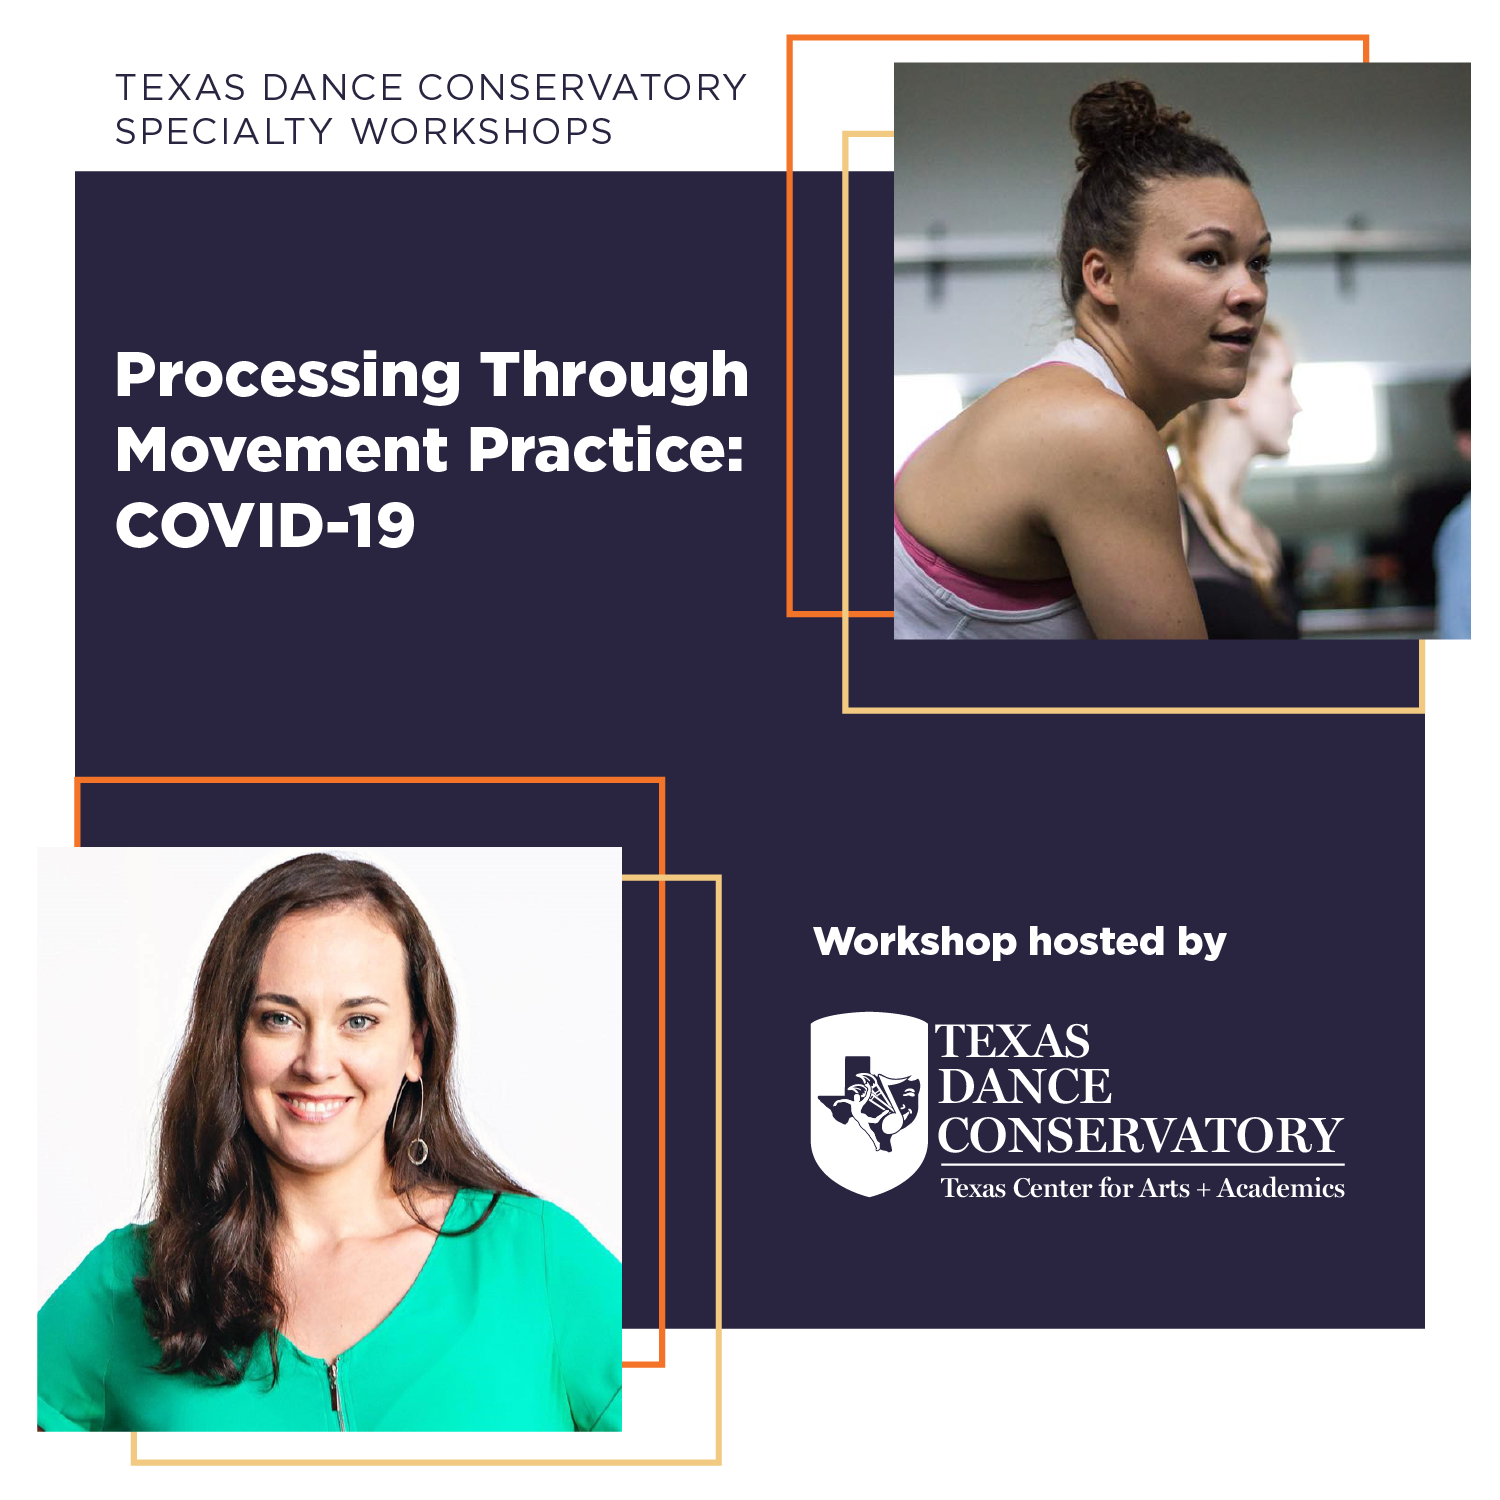 Virtual Specialty Workshop - Processing Through Movement Practice: COVID-19